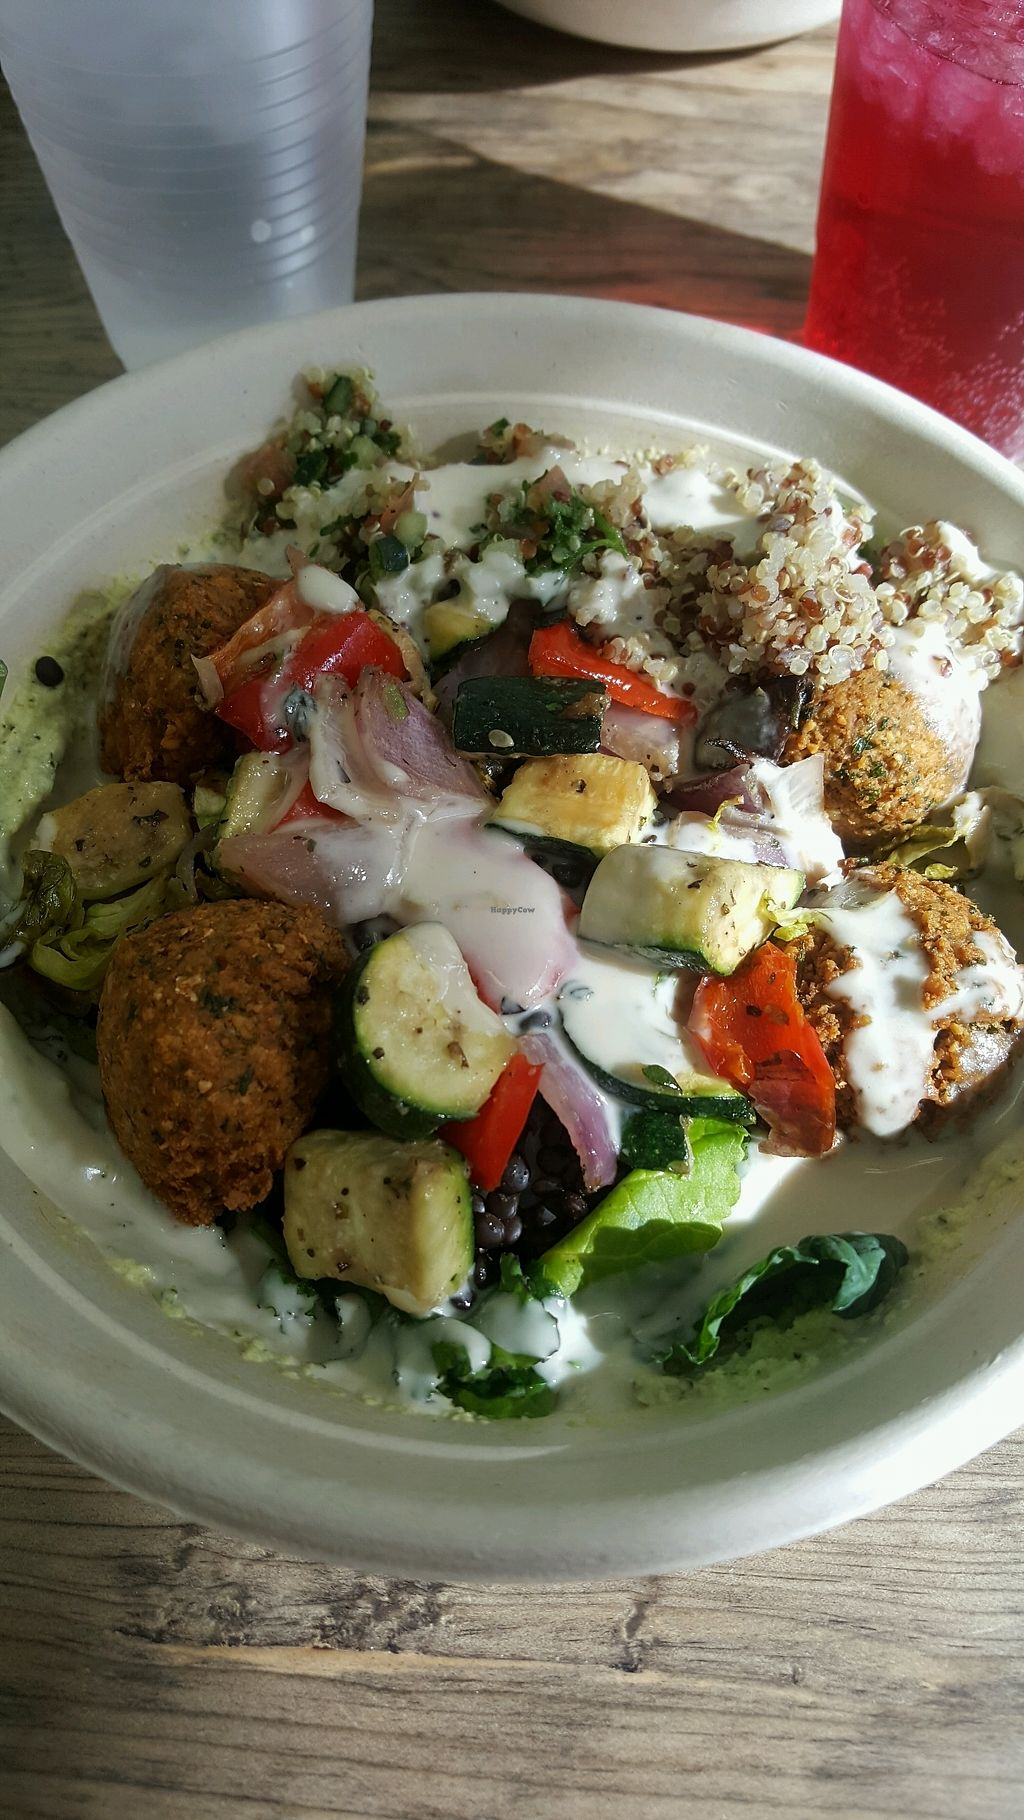 """Photo of Hummus  by <a href=""""/members/profile/kwhalon"""">kwhalon</a> <br/>Falafel and Roasted Veggies with Tahini <br/> February 10, 2018  - <a href='/contact/abuse/image/102375/357535'>Report</a>"""